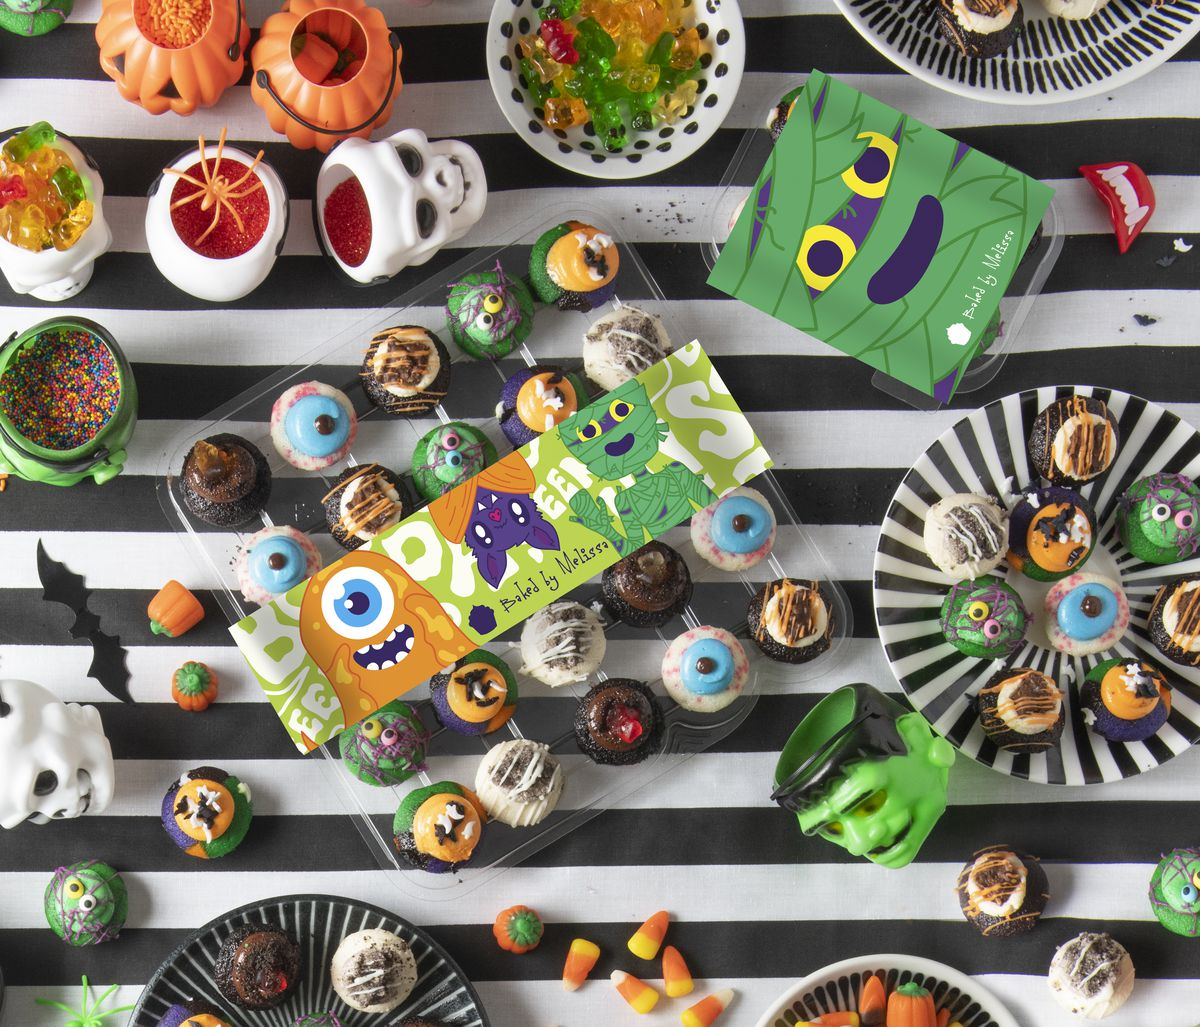 Several colorful Halloween colored cupcakes placed on a table